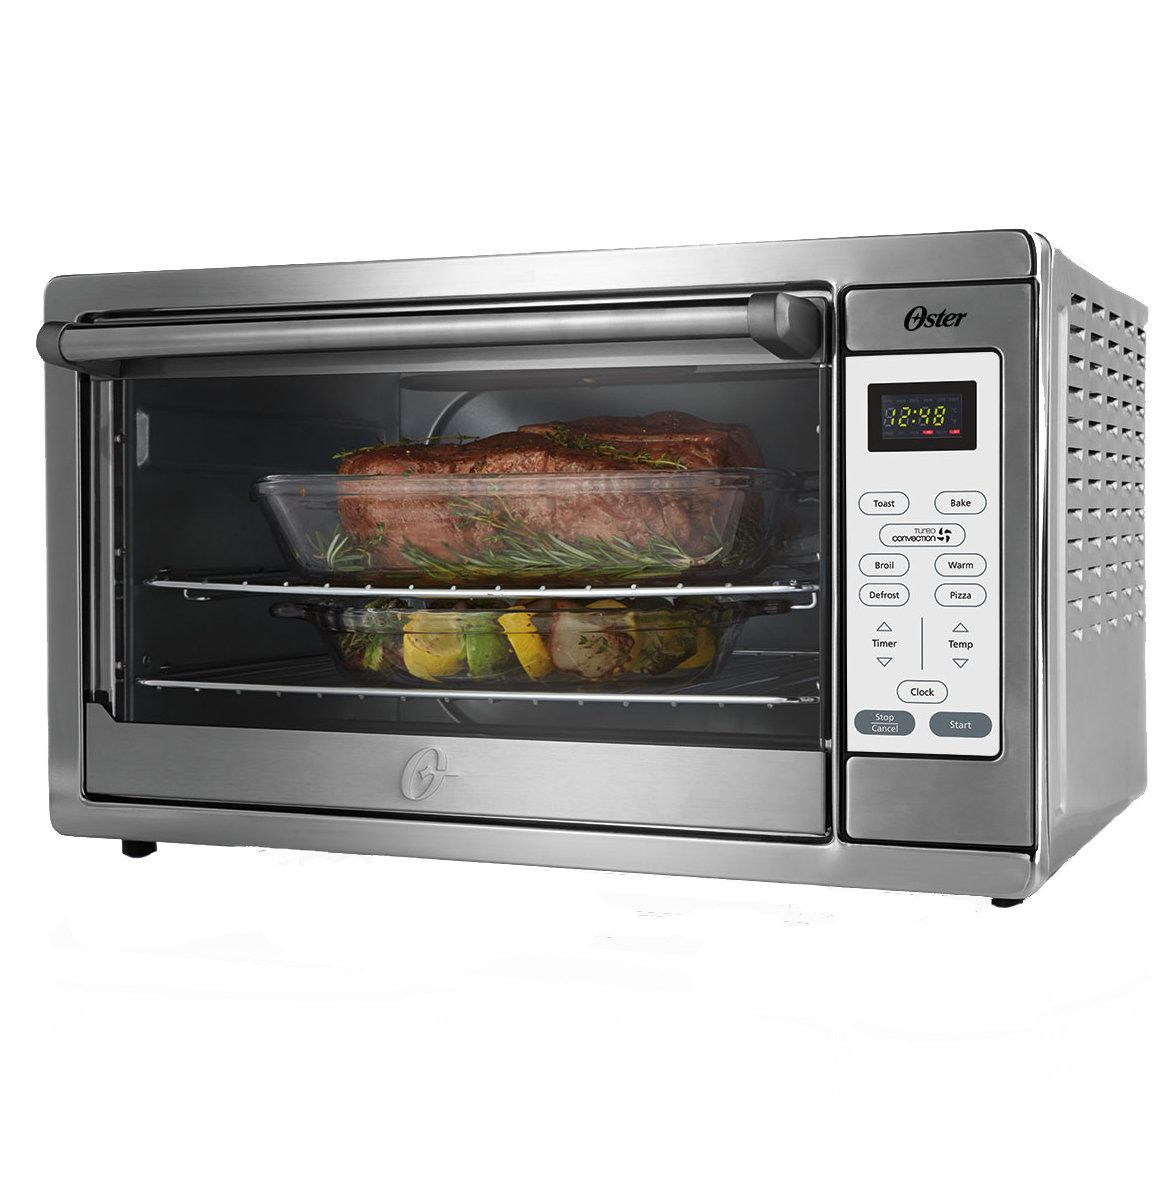 The 10 Best Toaster Ovens According To Customer Reviews Countertop Convection Oven Countertop Oven Convection Toaster Oven